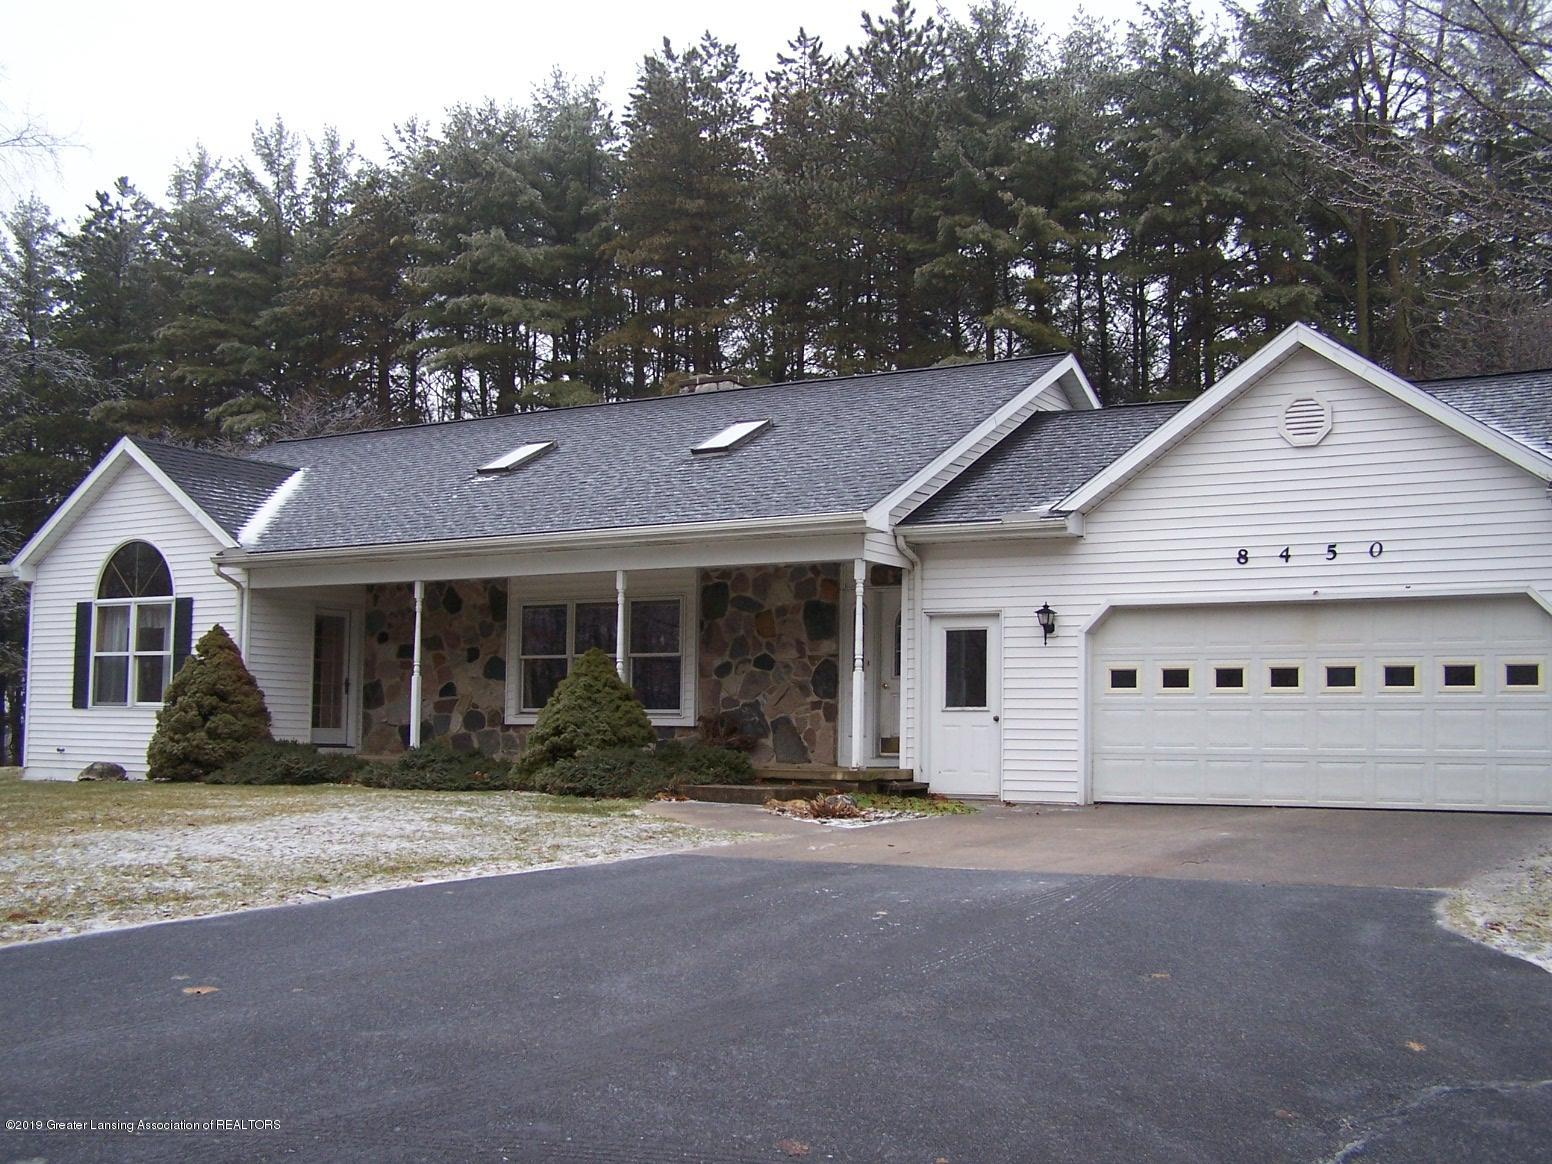 8450 Crawford Rd - FRONT - 1